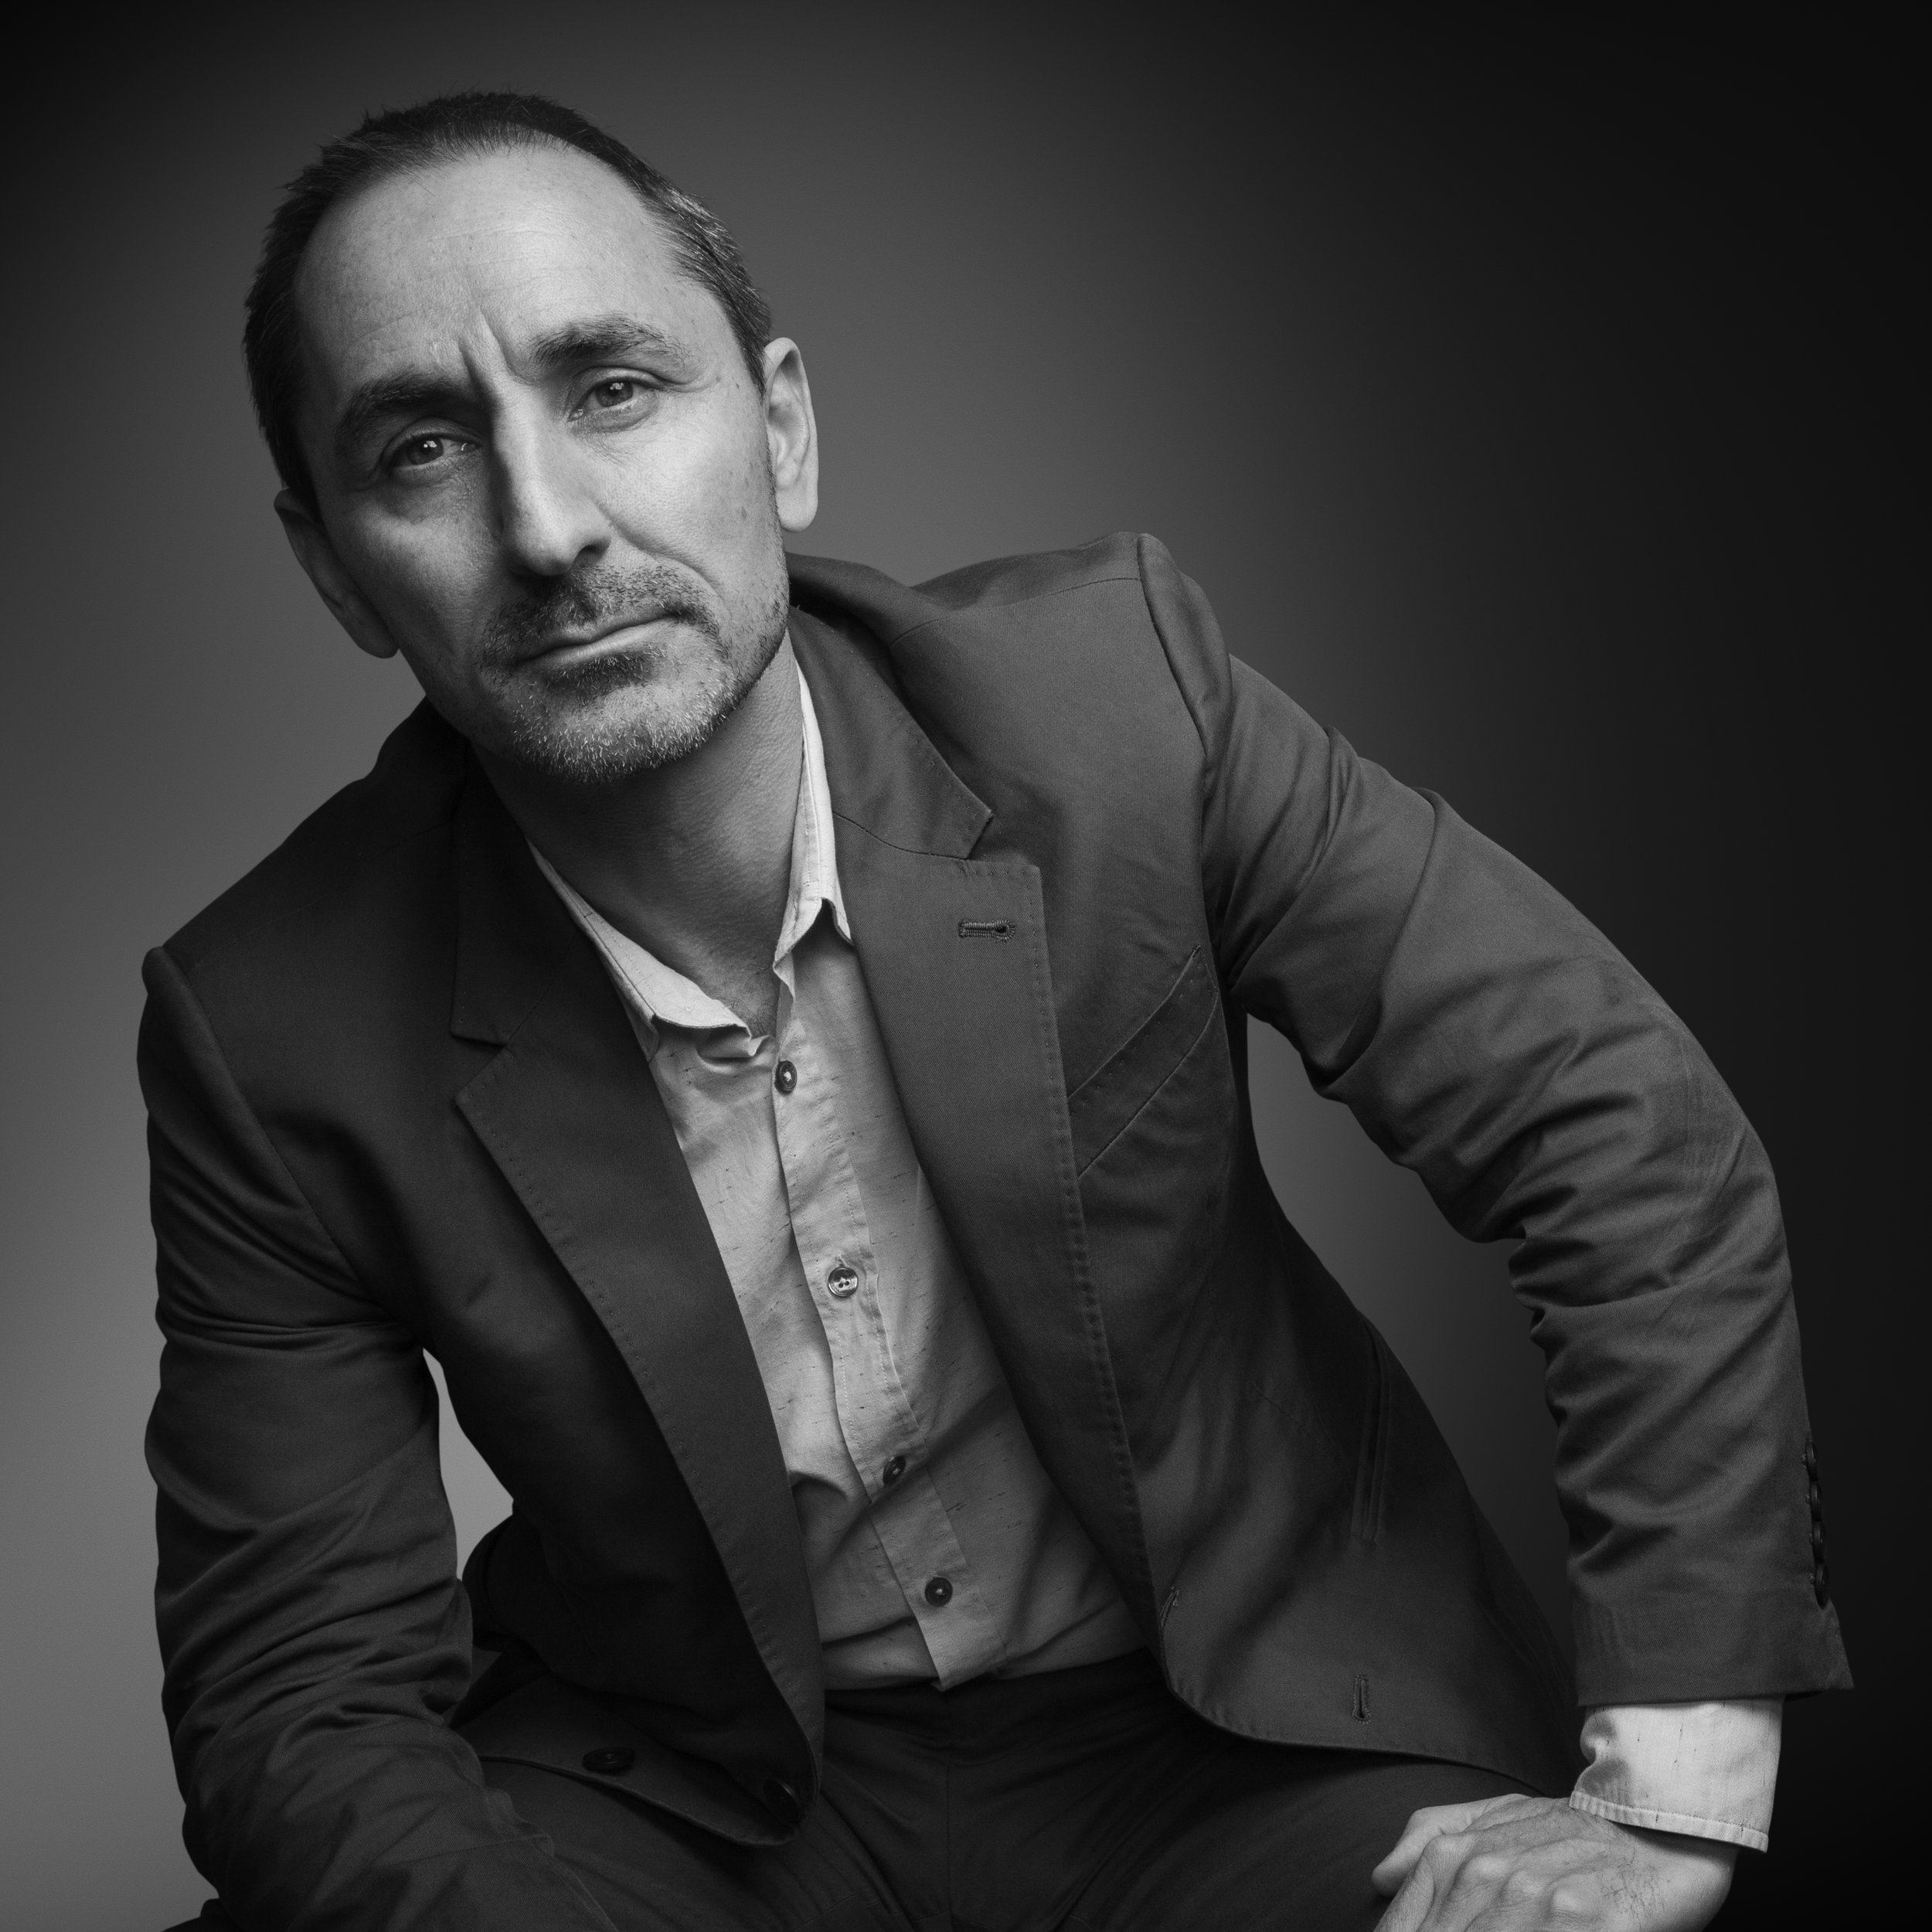 """david droga - Droga launched his career by winning top student honors at the Australian Writers & Art Directors School. In 1996, he took up the position of ECD of Saatchi & Saatchi Singapore and later Regional CD of Saatchi Asia, before being promoted to Executive Creative Director of Saatchi & Saatchi London at age 29. In 2003, Droga moved to New York City as the first ever Worldwide Chief Creative Officer of the Publicis Network, helping it to a business renaissance around the world. In 2006, Droga decided to start his own agency and launched Droga5, now wildly successful, headquartered in New York City with offices in London and Sydney. To date, Droga is the single-most awarded creative at the Cannes International Advertising Festival. Aside from countless other achievements, he is also the youngest person ever to be inducted into the New York Art Directors Club """"Hall of Fame."""""""